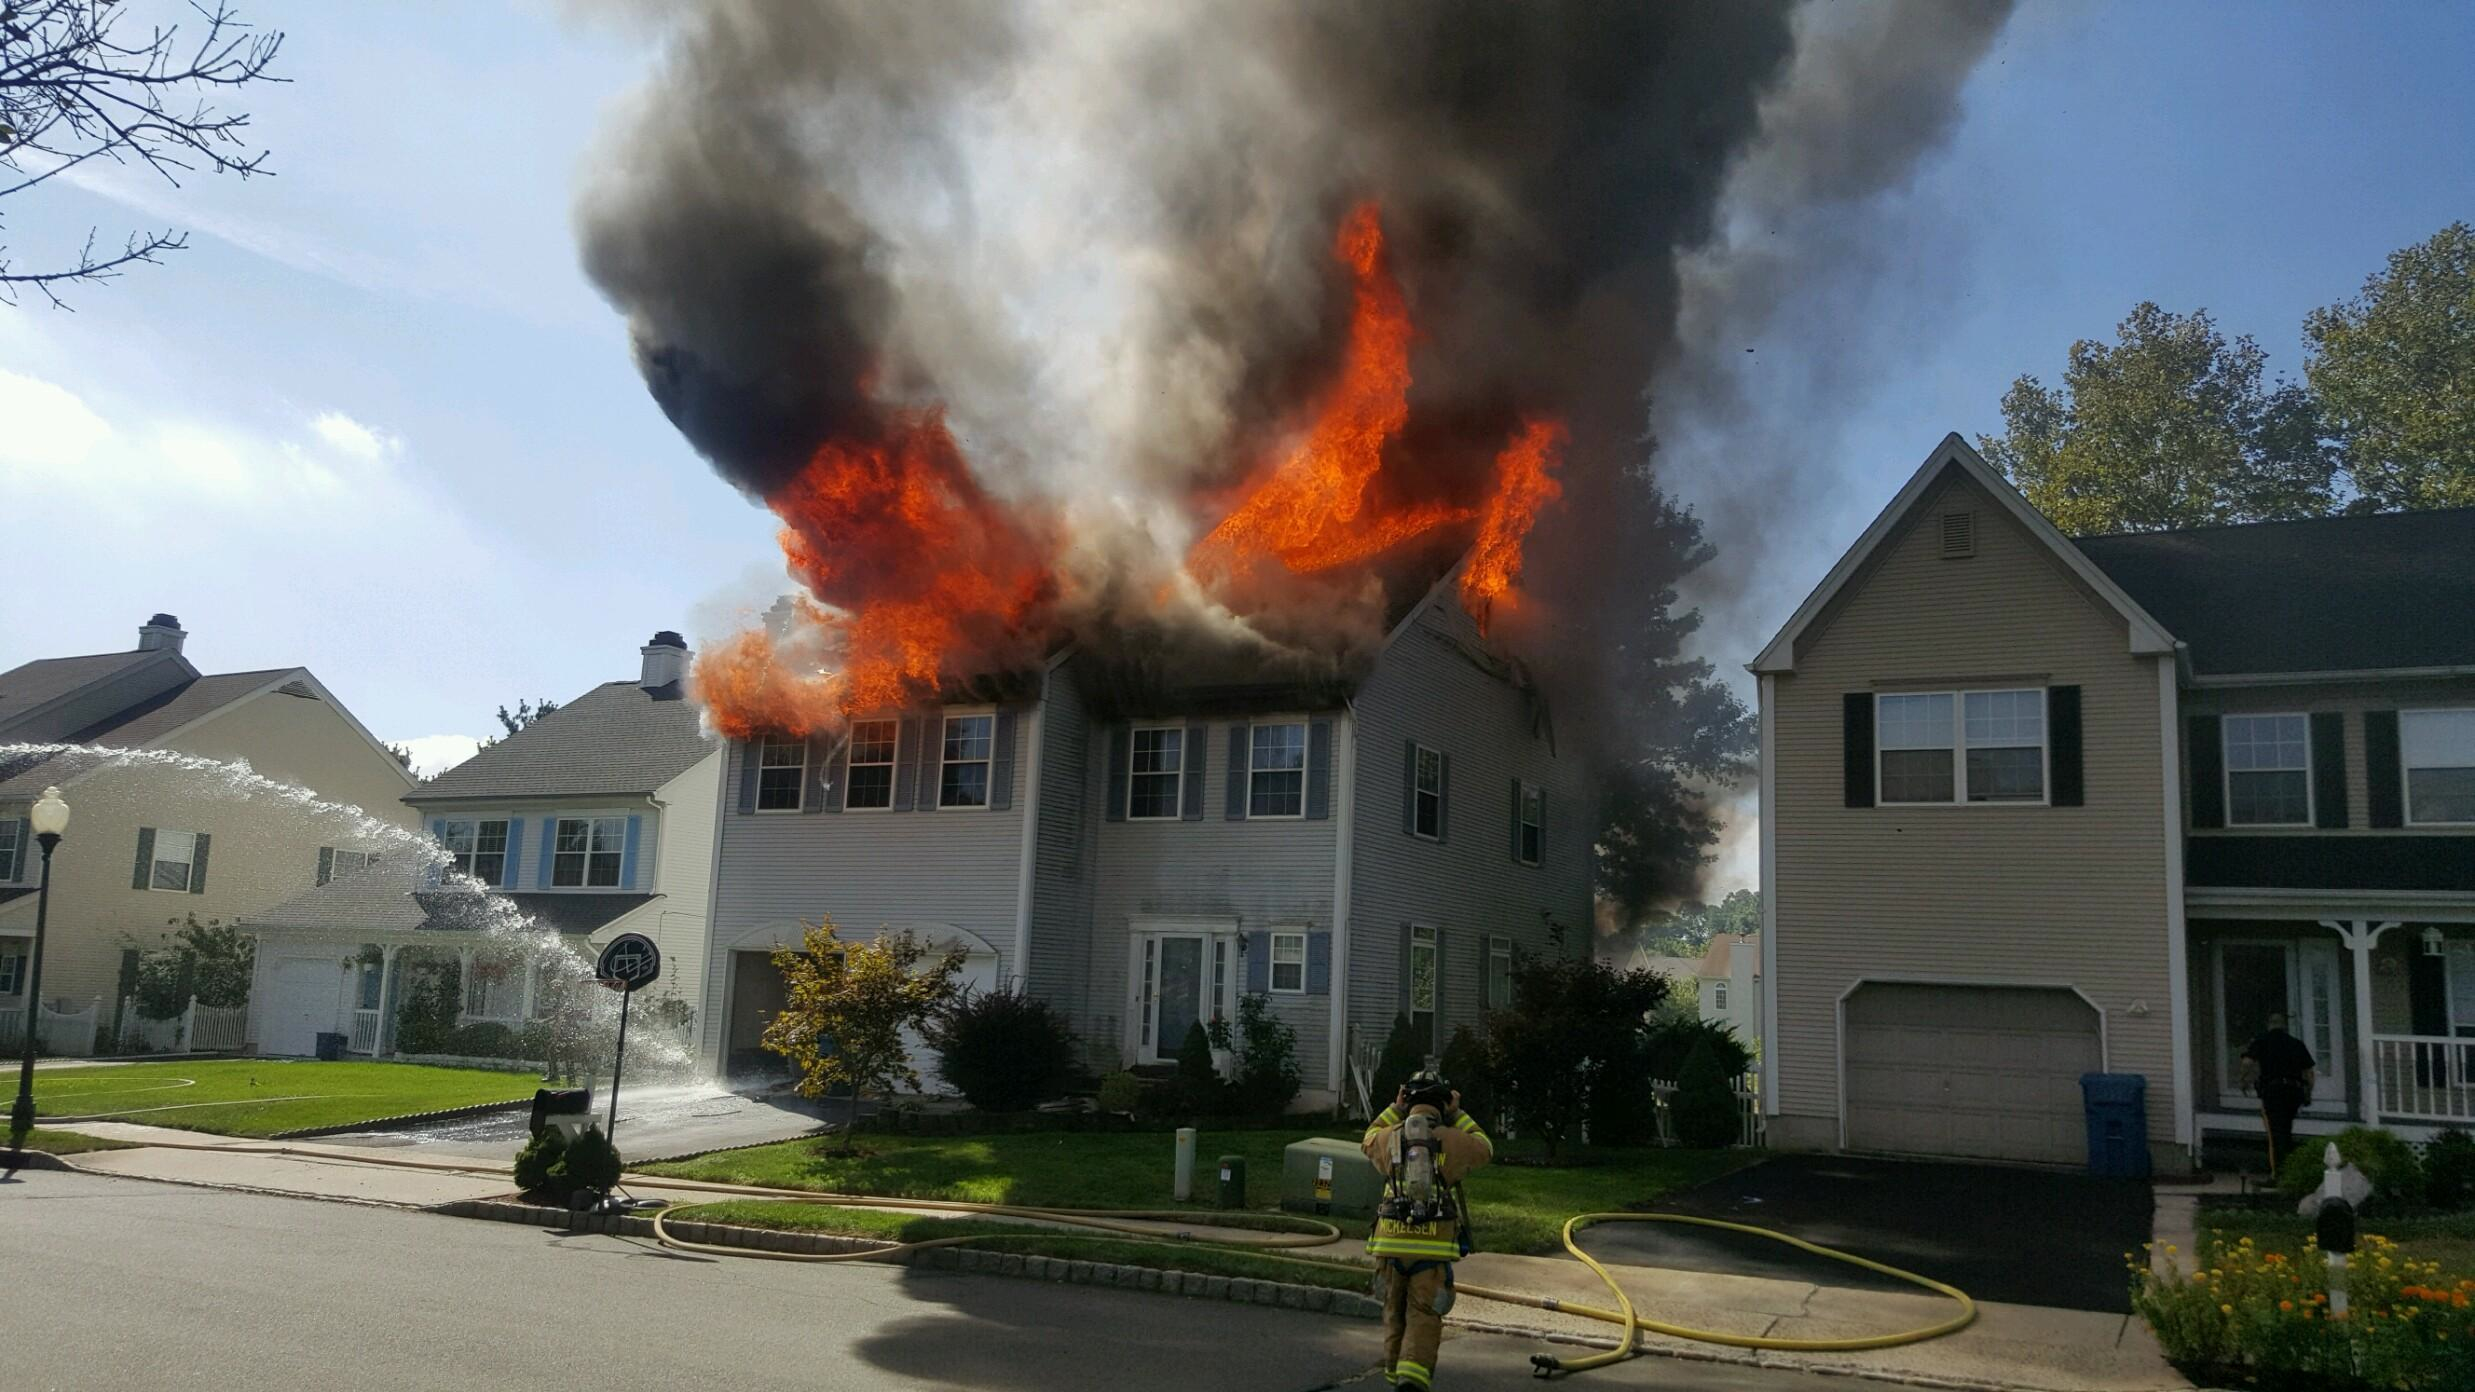 updated morning fire guts marco polo court home the franklin reporter advocate. Black Bedroom Furniture Sets. Home Design Ideas